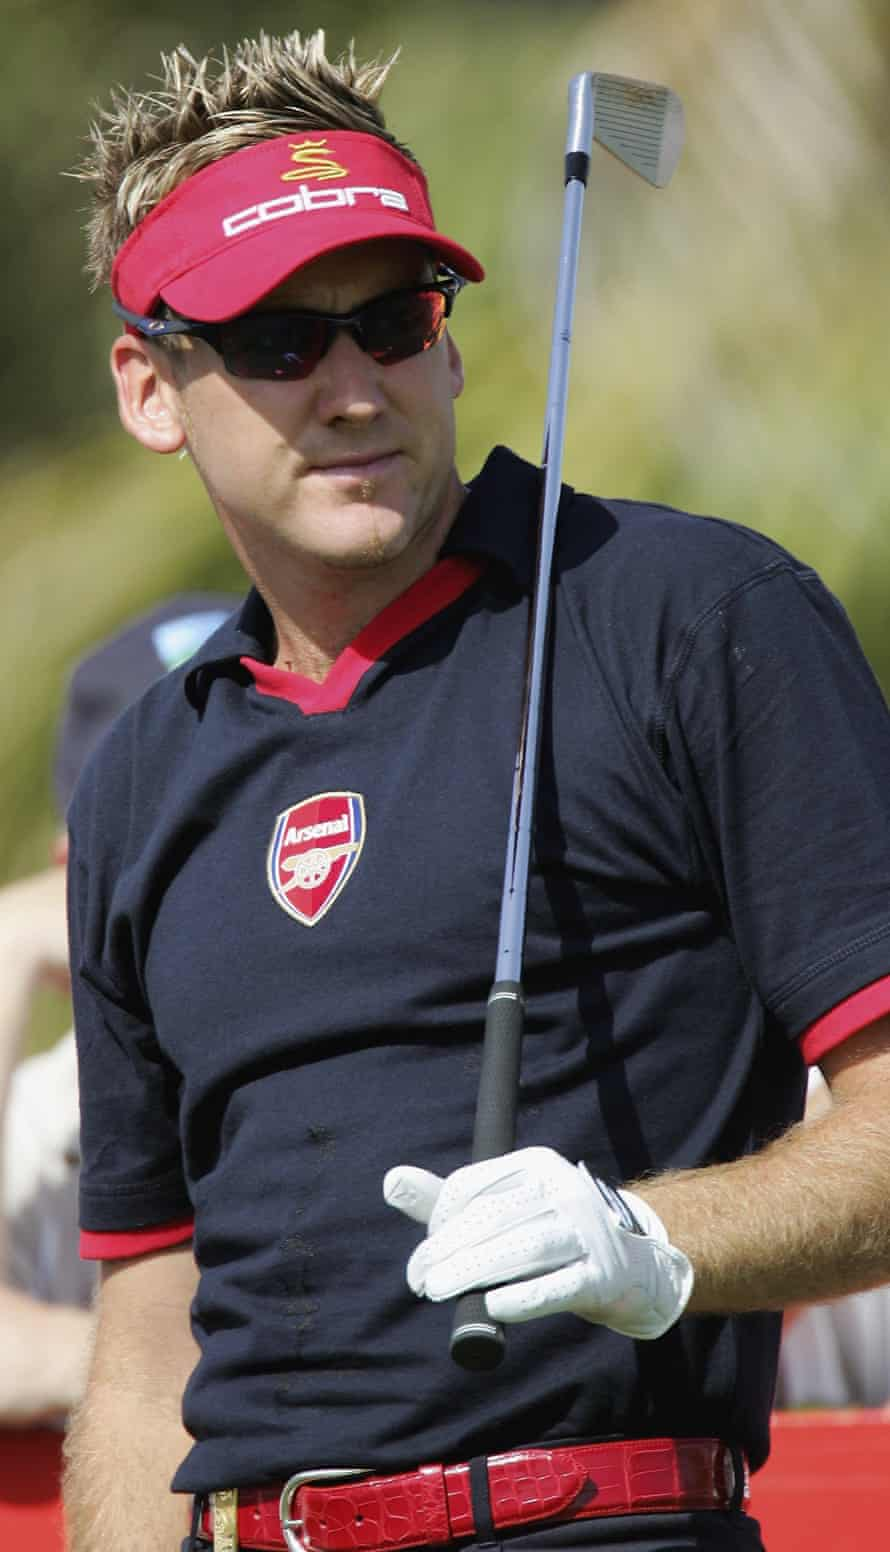 Ian Poulter wears an Arsenal shirt during the first round of the Dubai Desert Classic in February 2006.